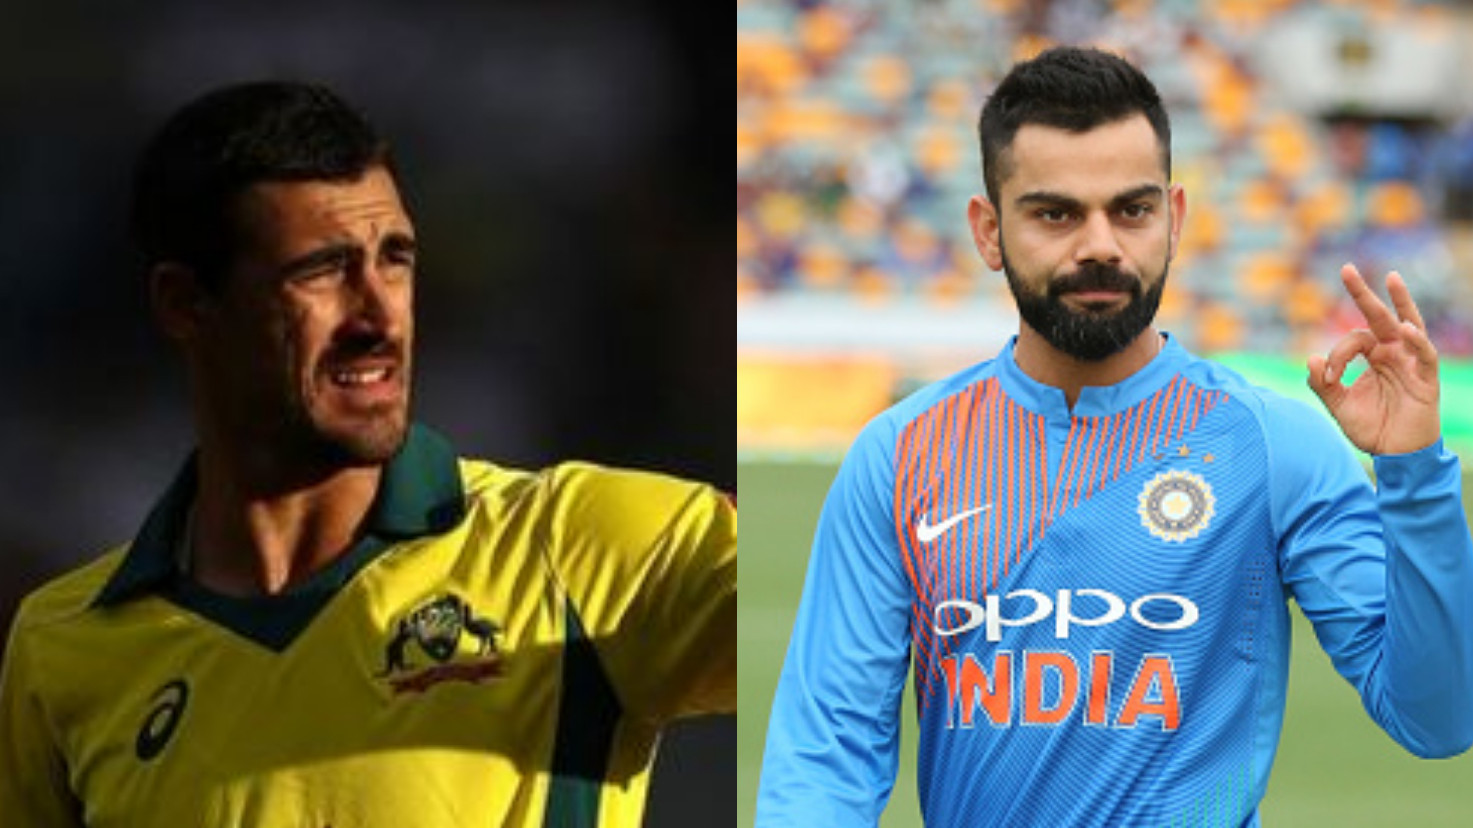 AUS v IND 2018-19: Inclusion of Mitchell Starc prompts Virat Kohli to add two practice sessions for Team India